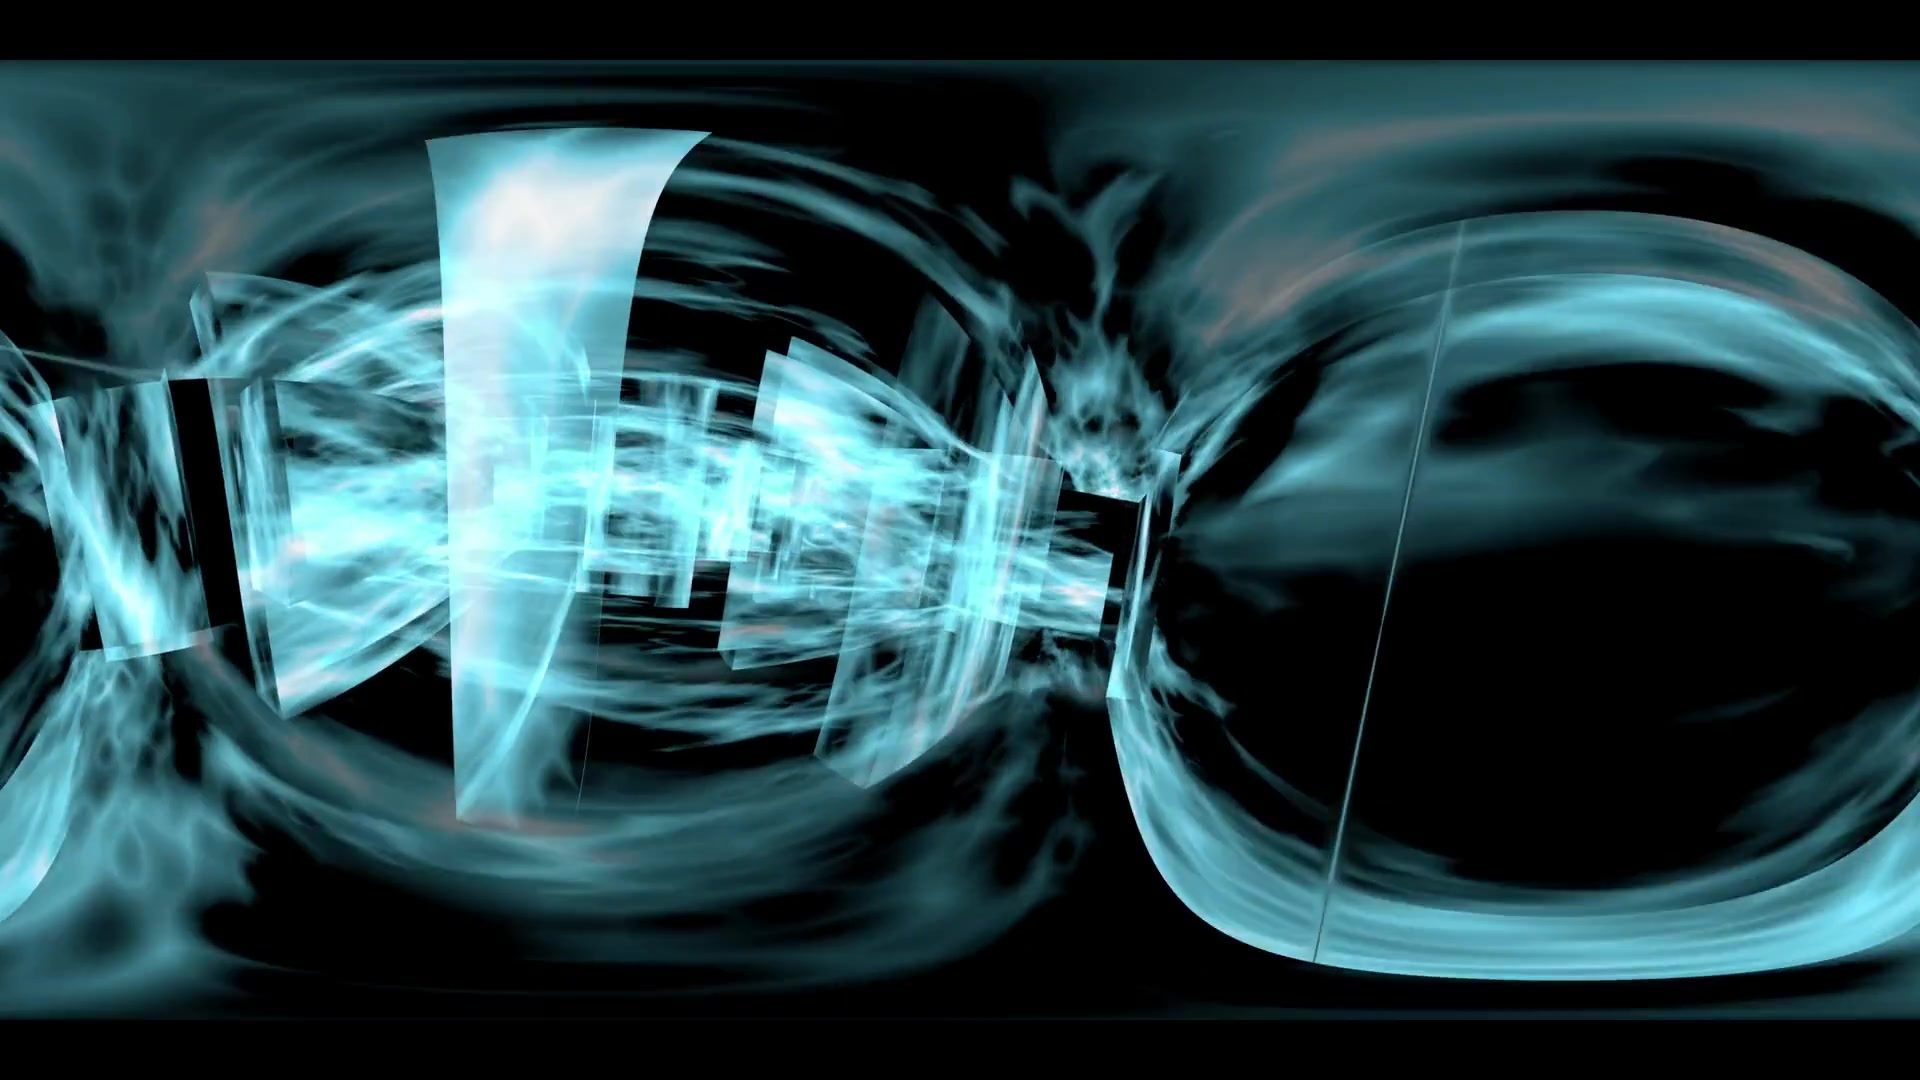 360 VR Maze 005: Virtual reality video inside a maze of plasma light (Loop). Designed to be used in Oculus Rift, Samsung Gear VR and other virtual reality displays.